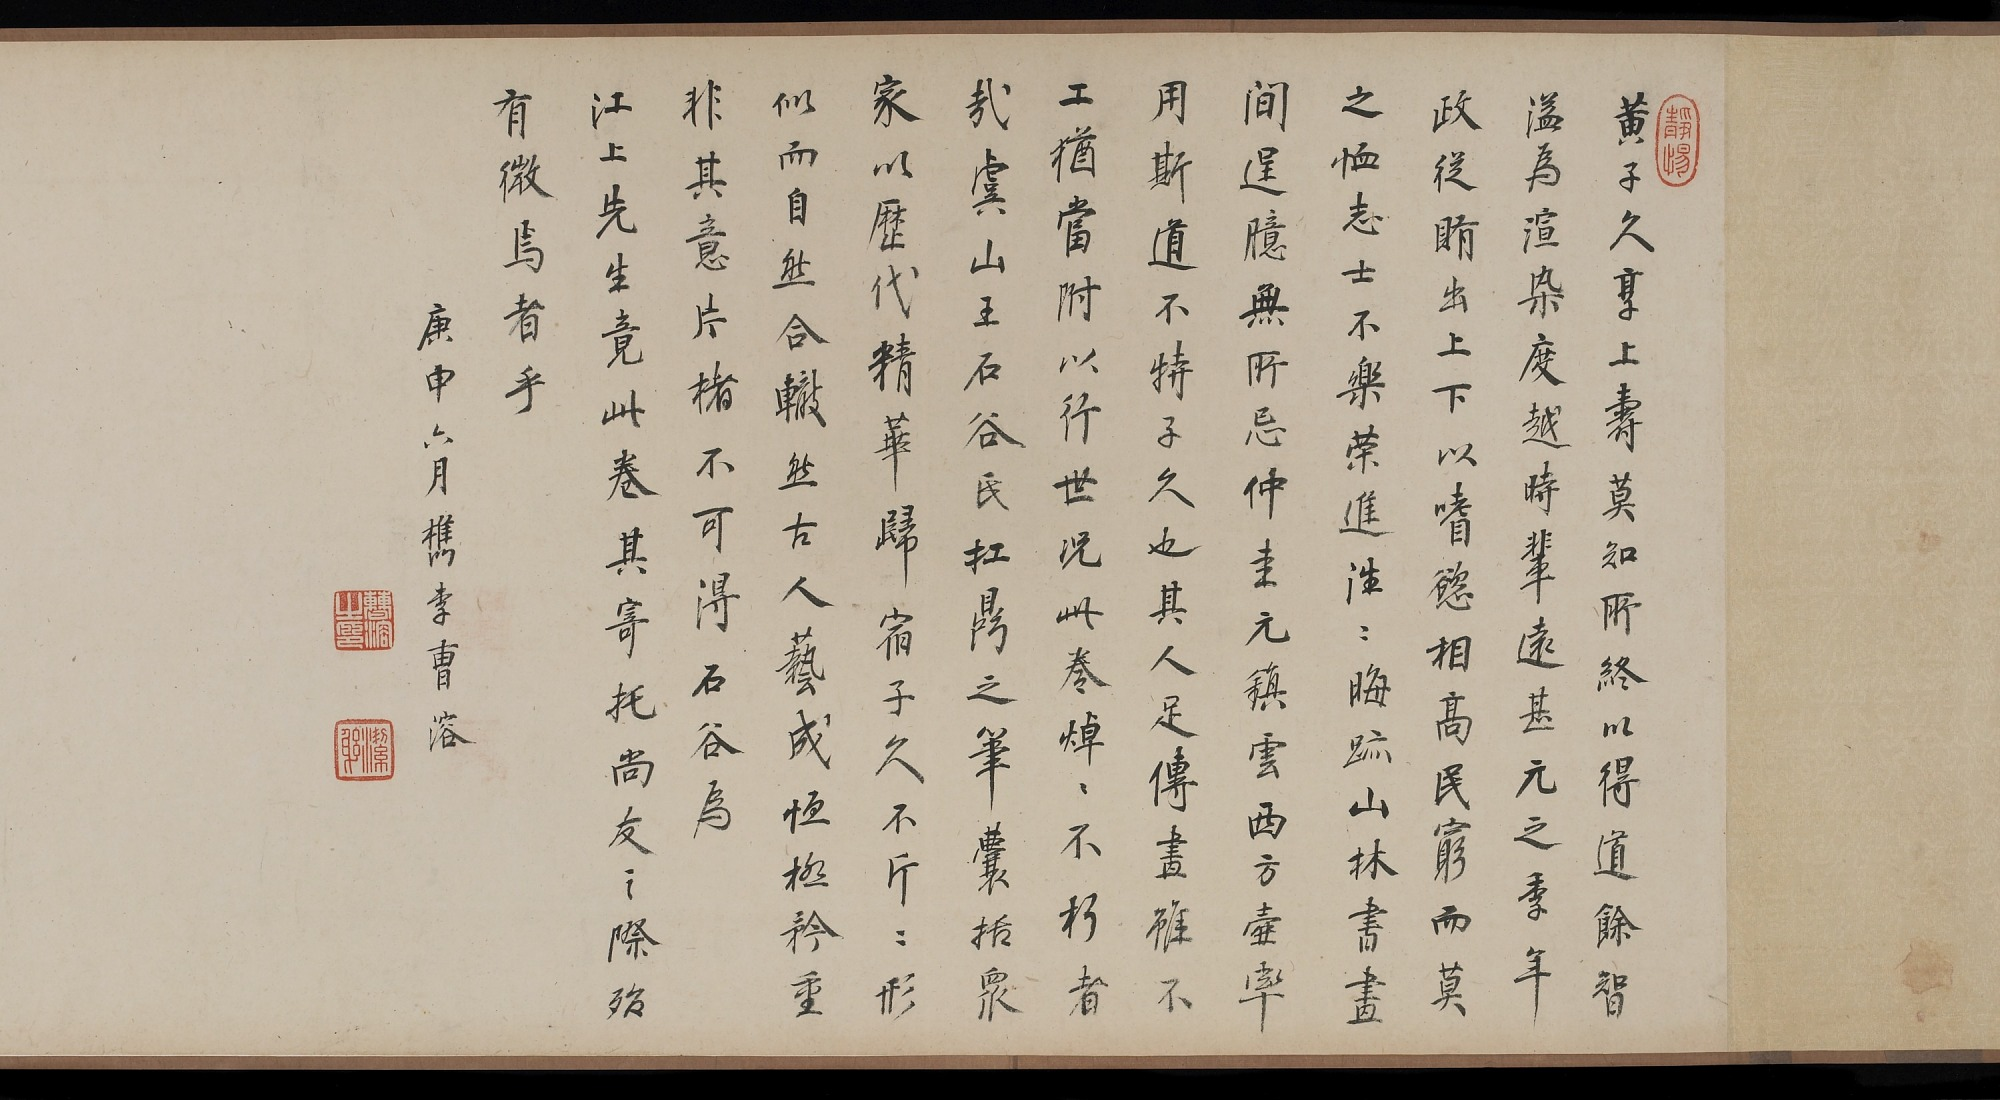 section 15: Dwelling in the Fuchun Mountains after Huang Gongwang